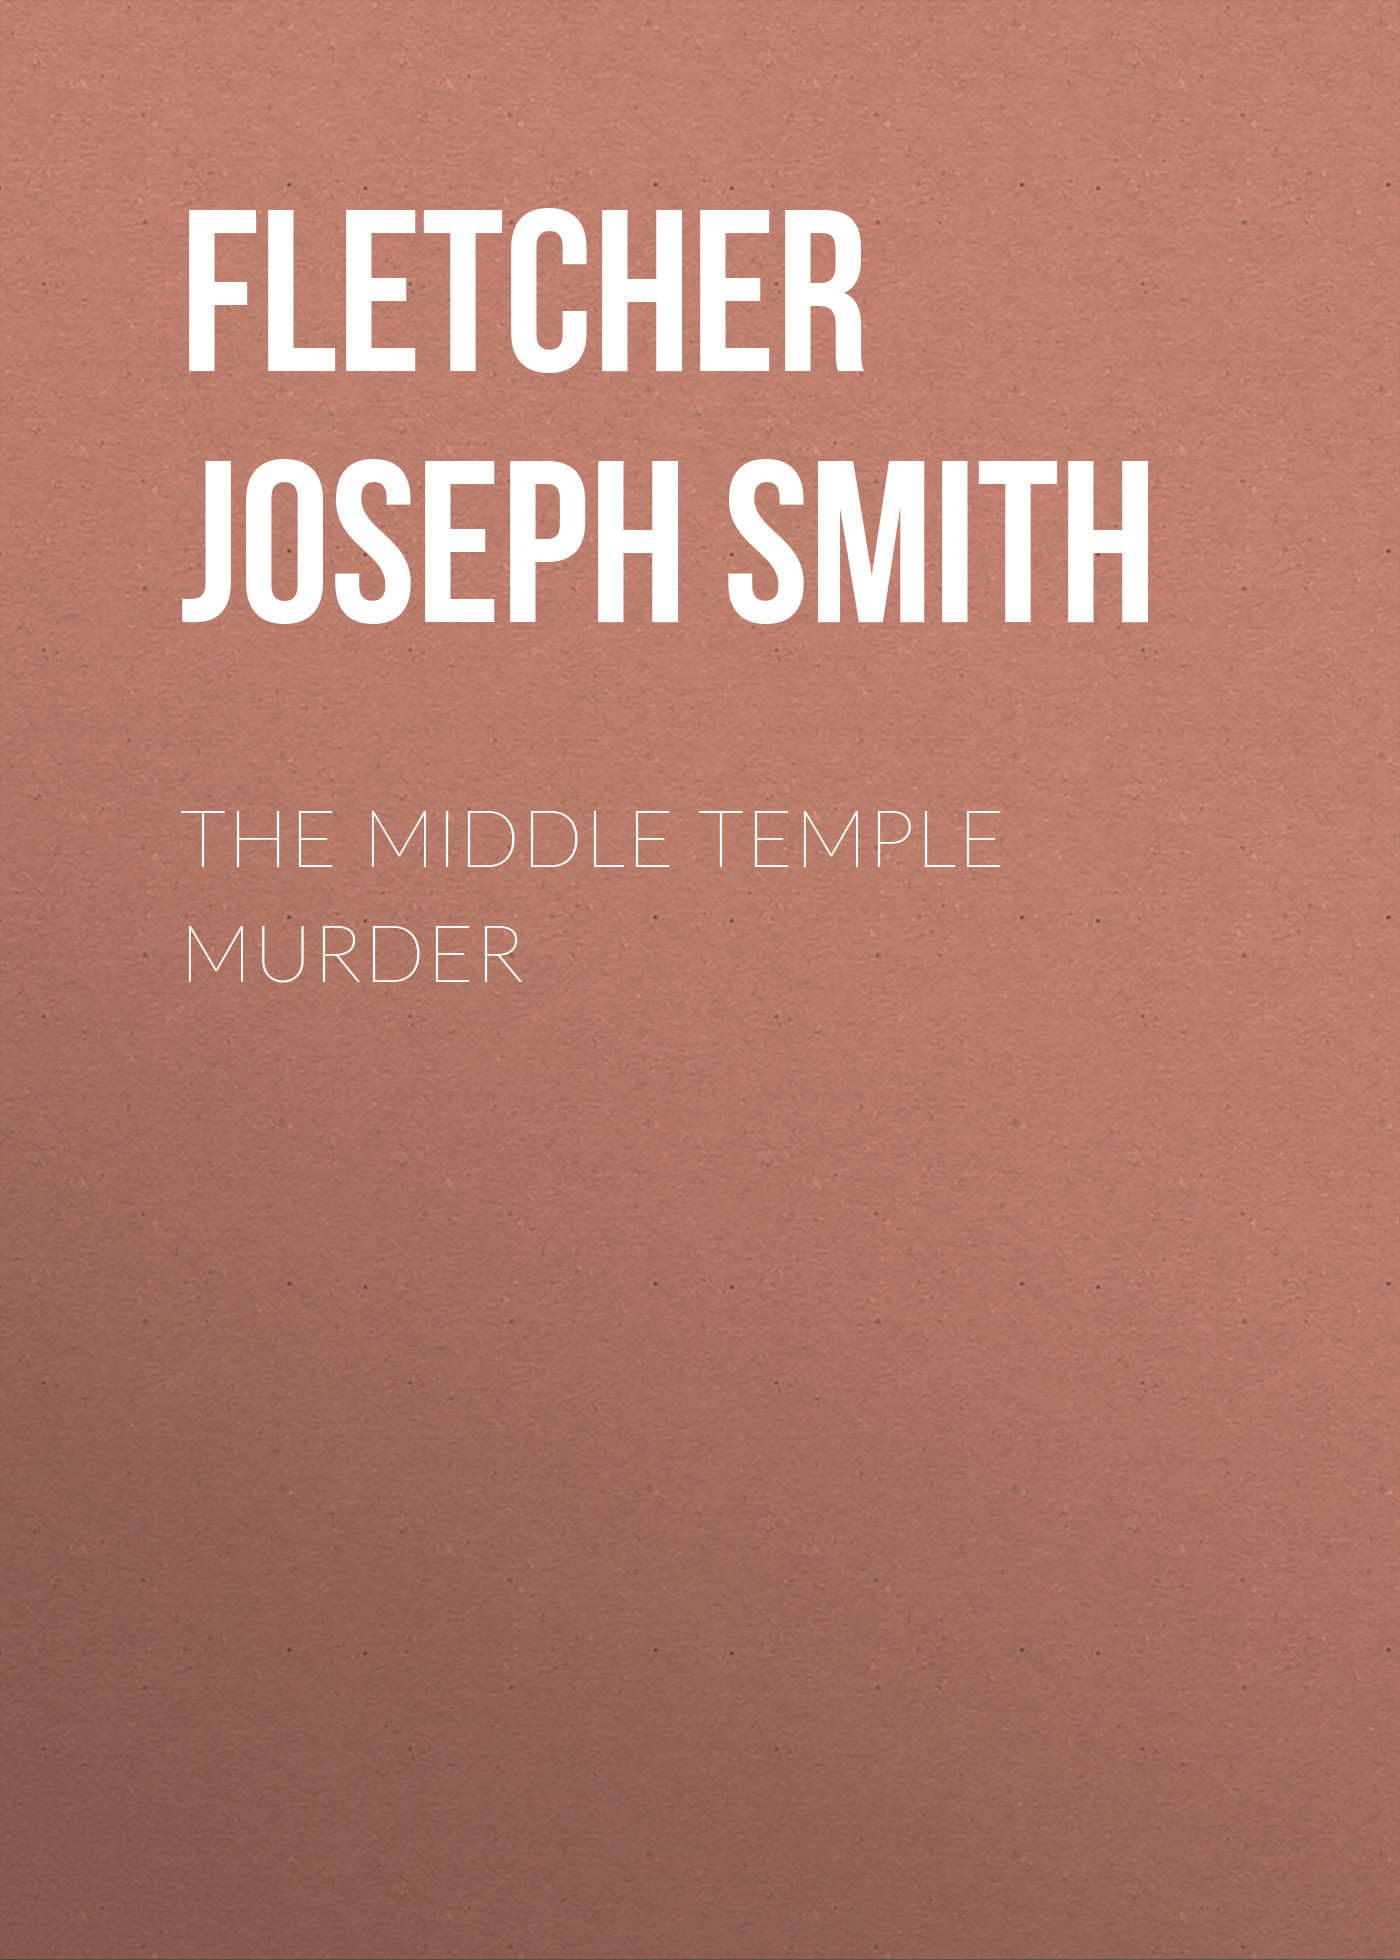 Fletcher Joseph Smith The Middle Temple Murder murder calls on the temple mount